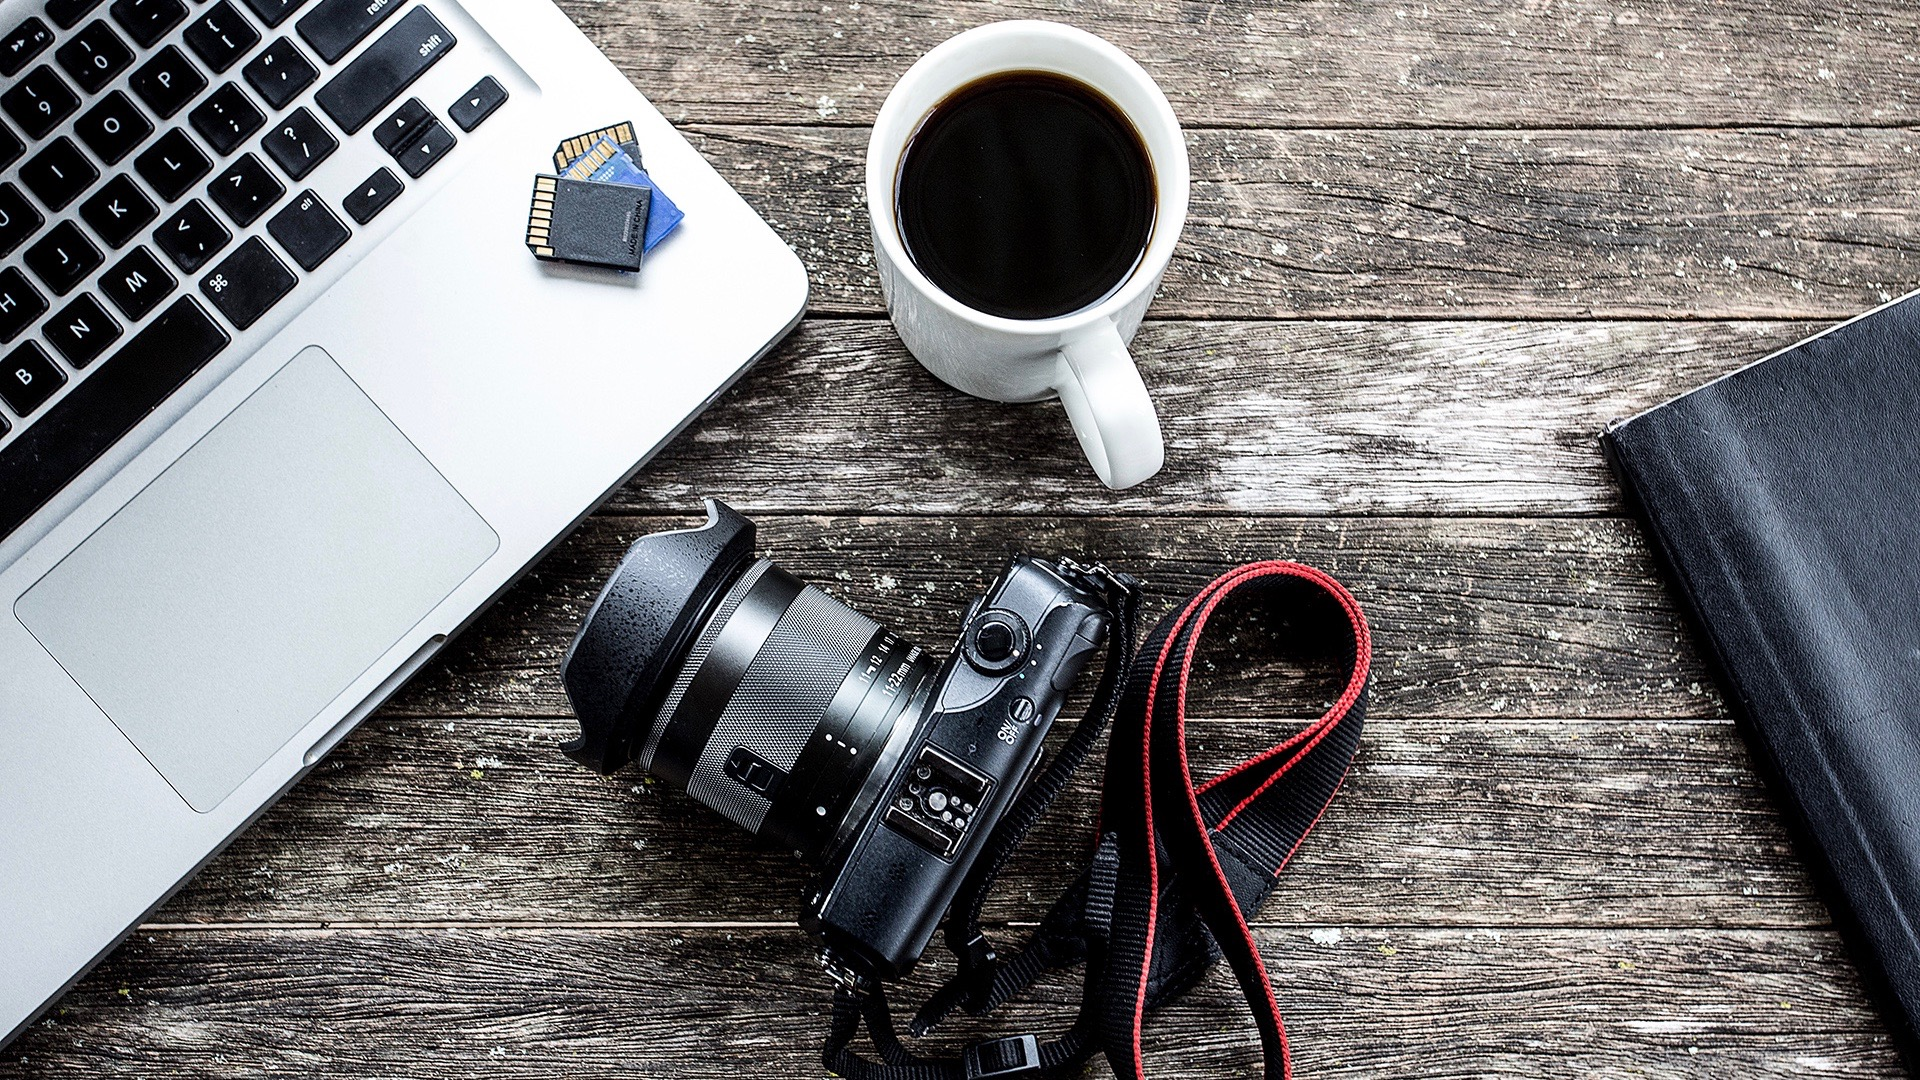 - 500px BlogThe best photo editing software for photographers in 2019